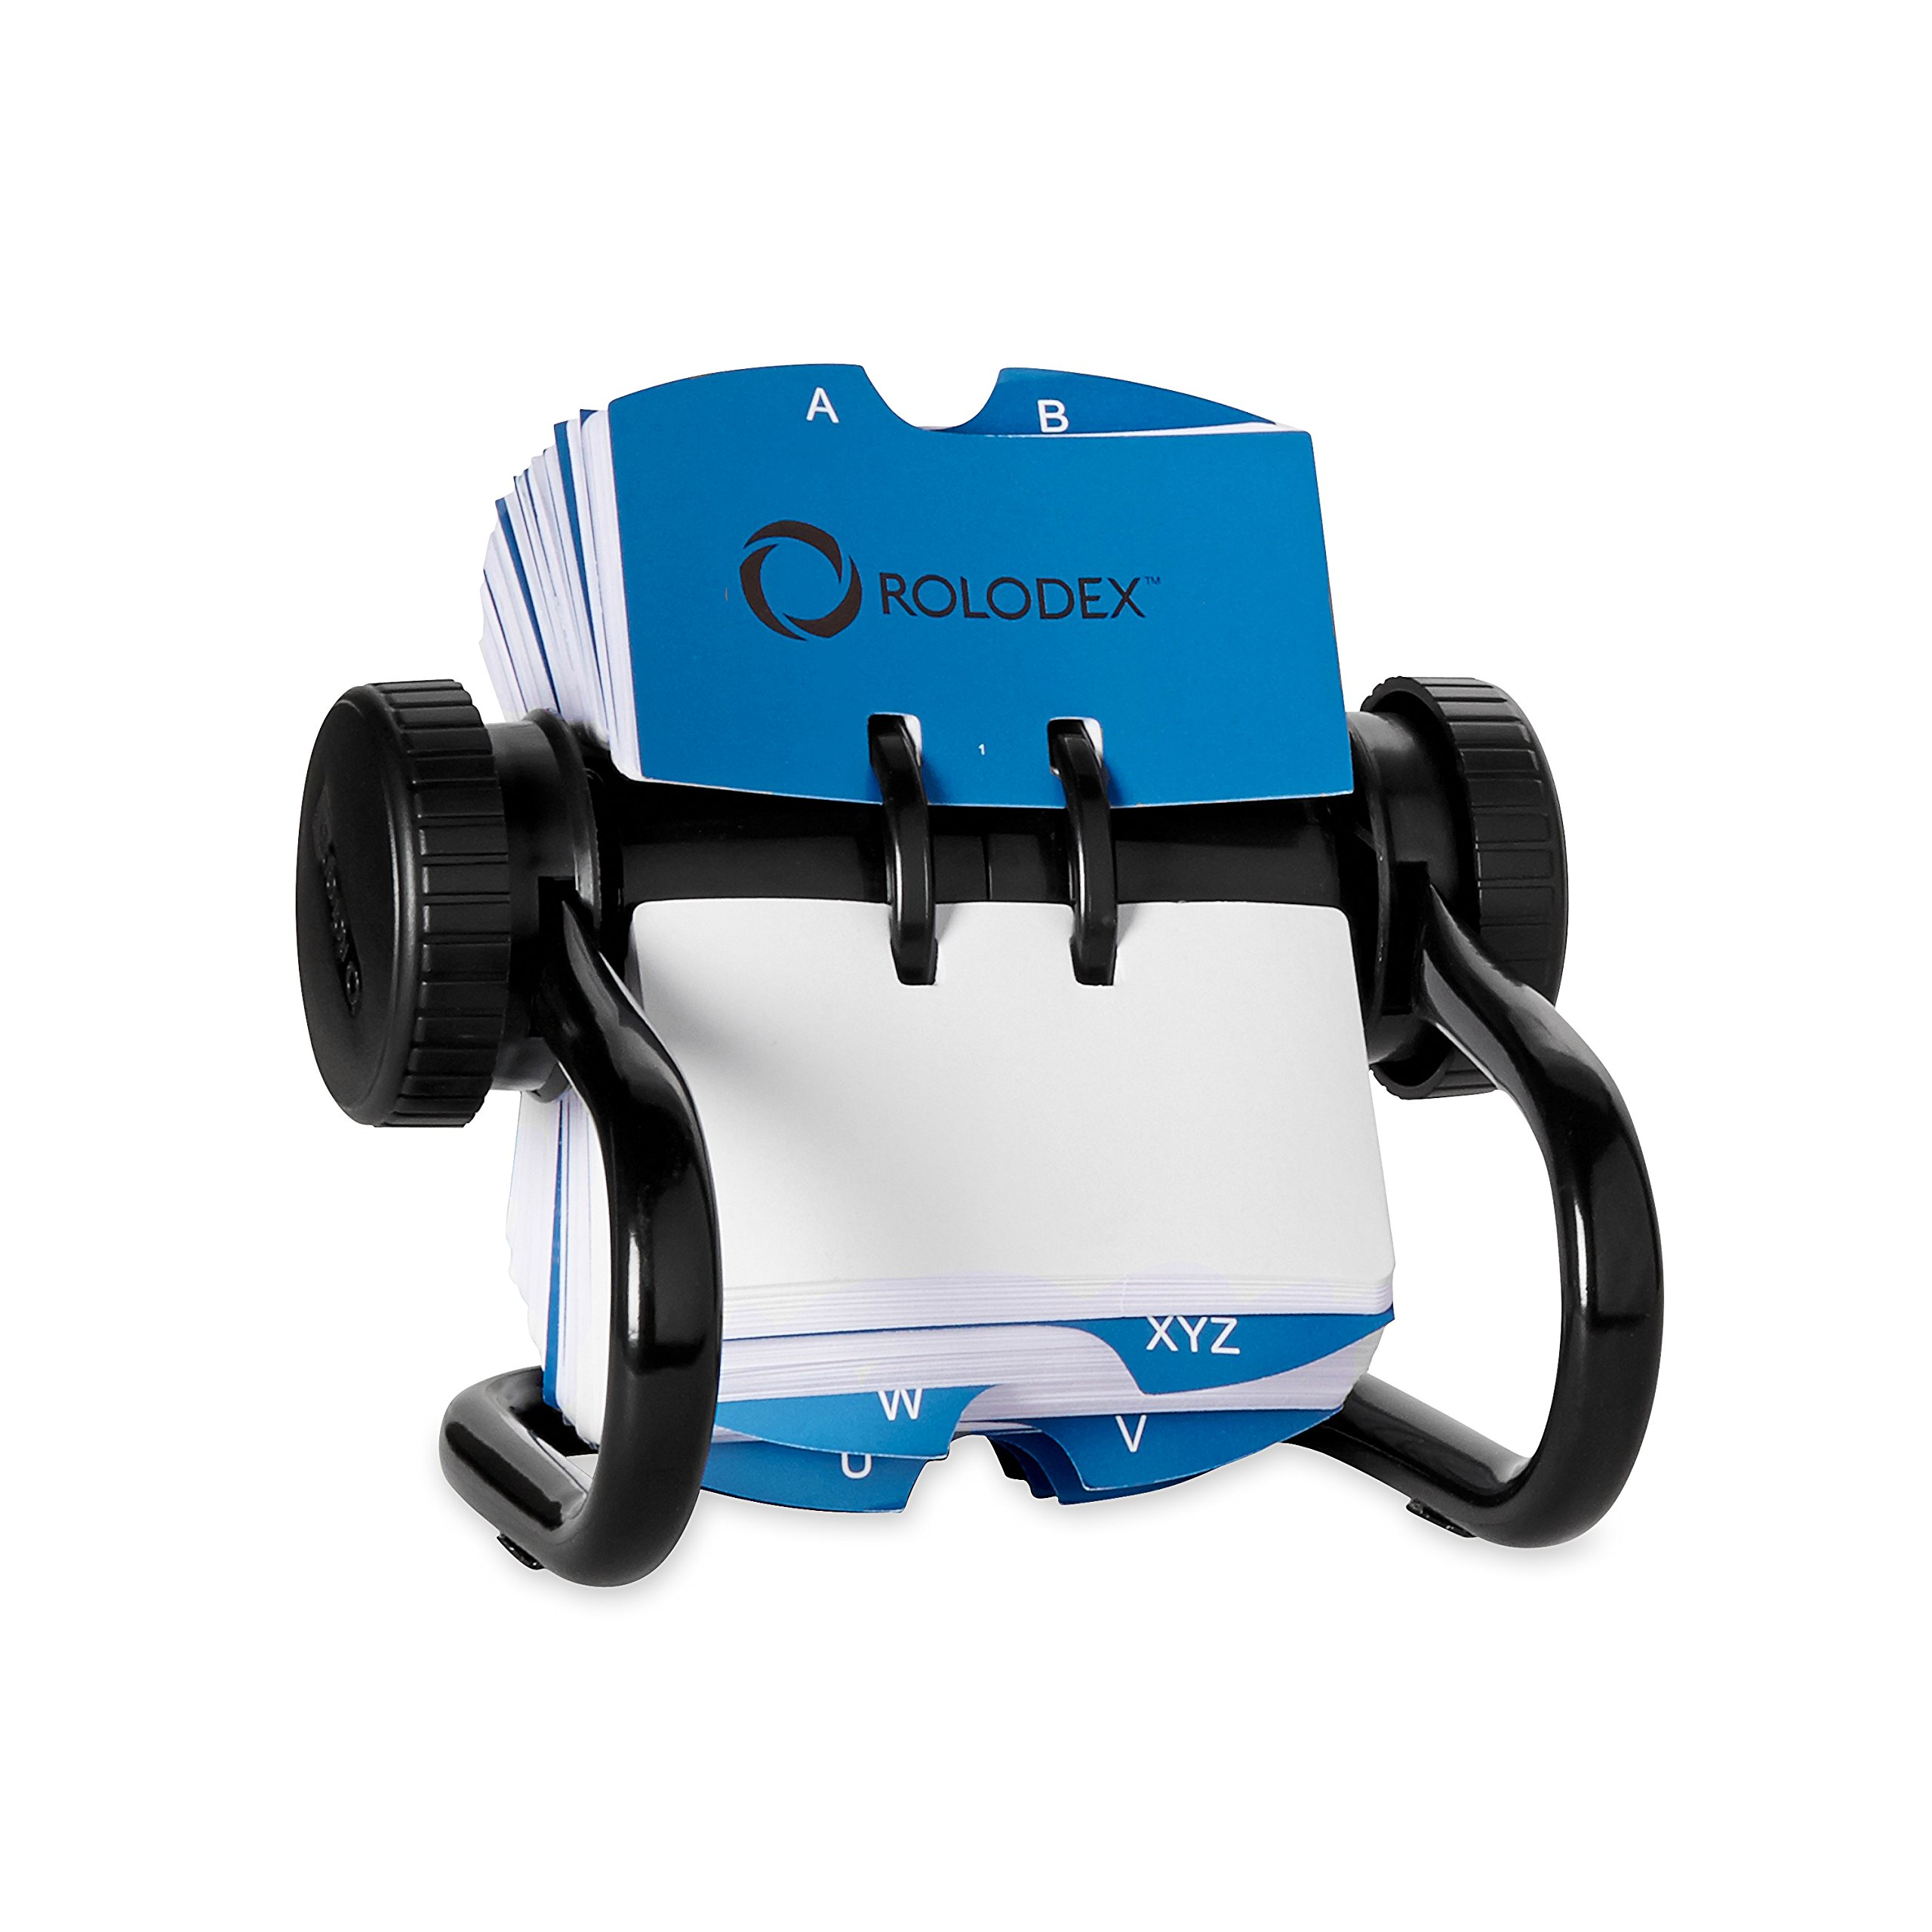 Rolodex 500-Card Rotary Card File | Business Card Holder